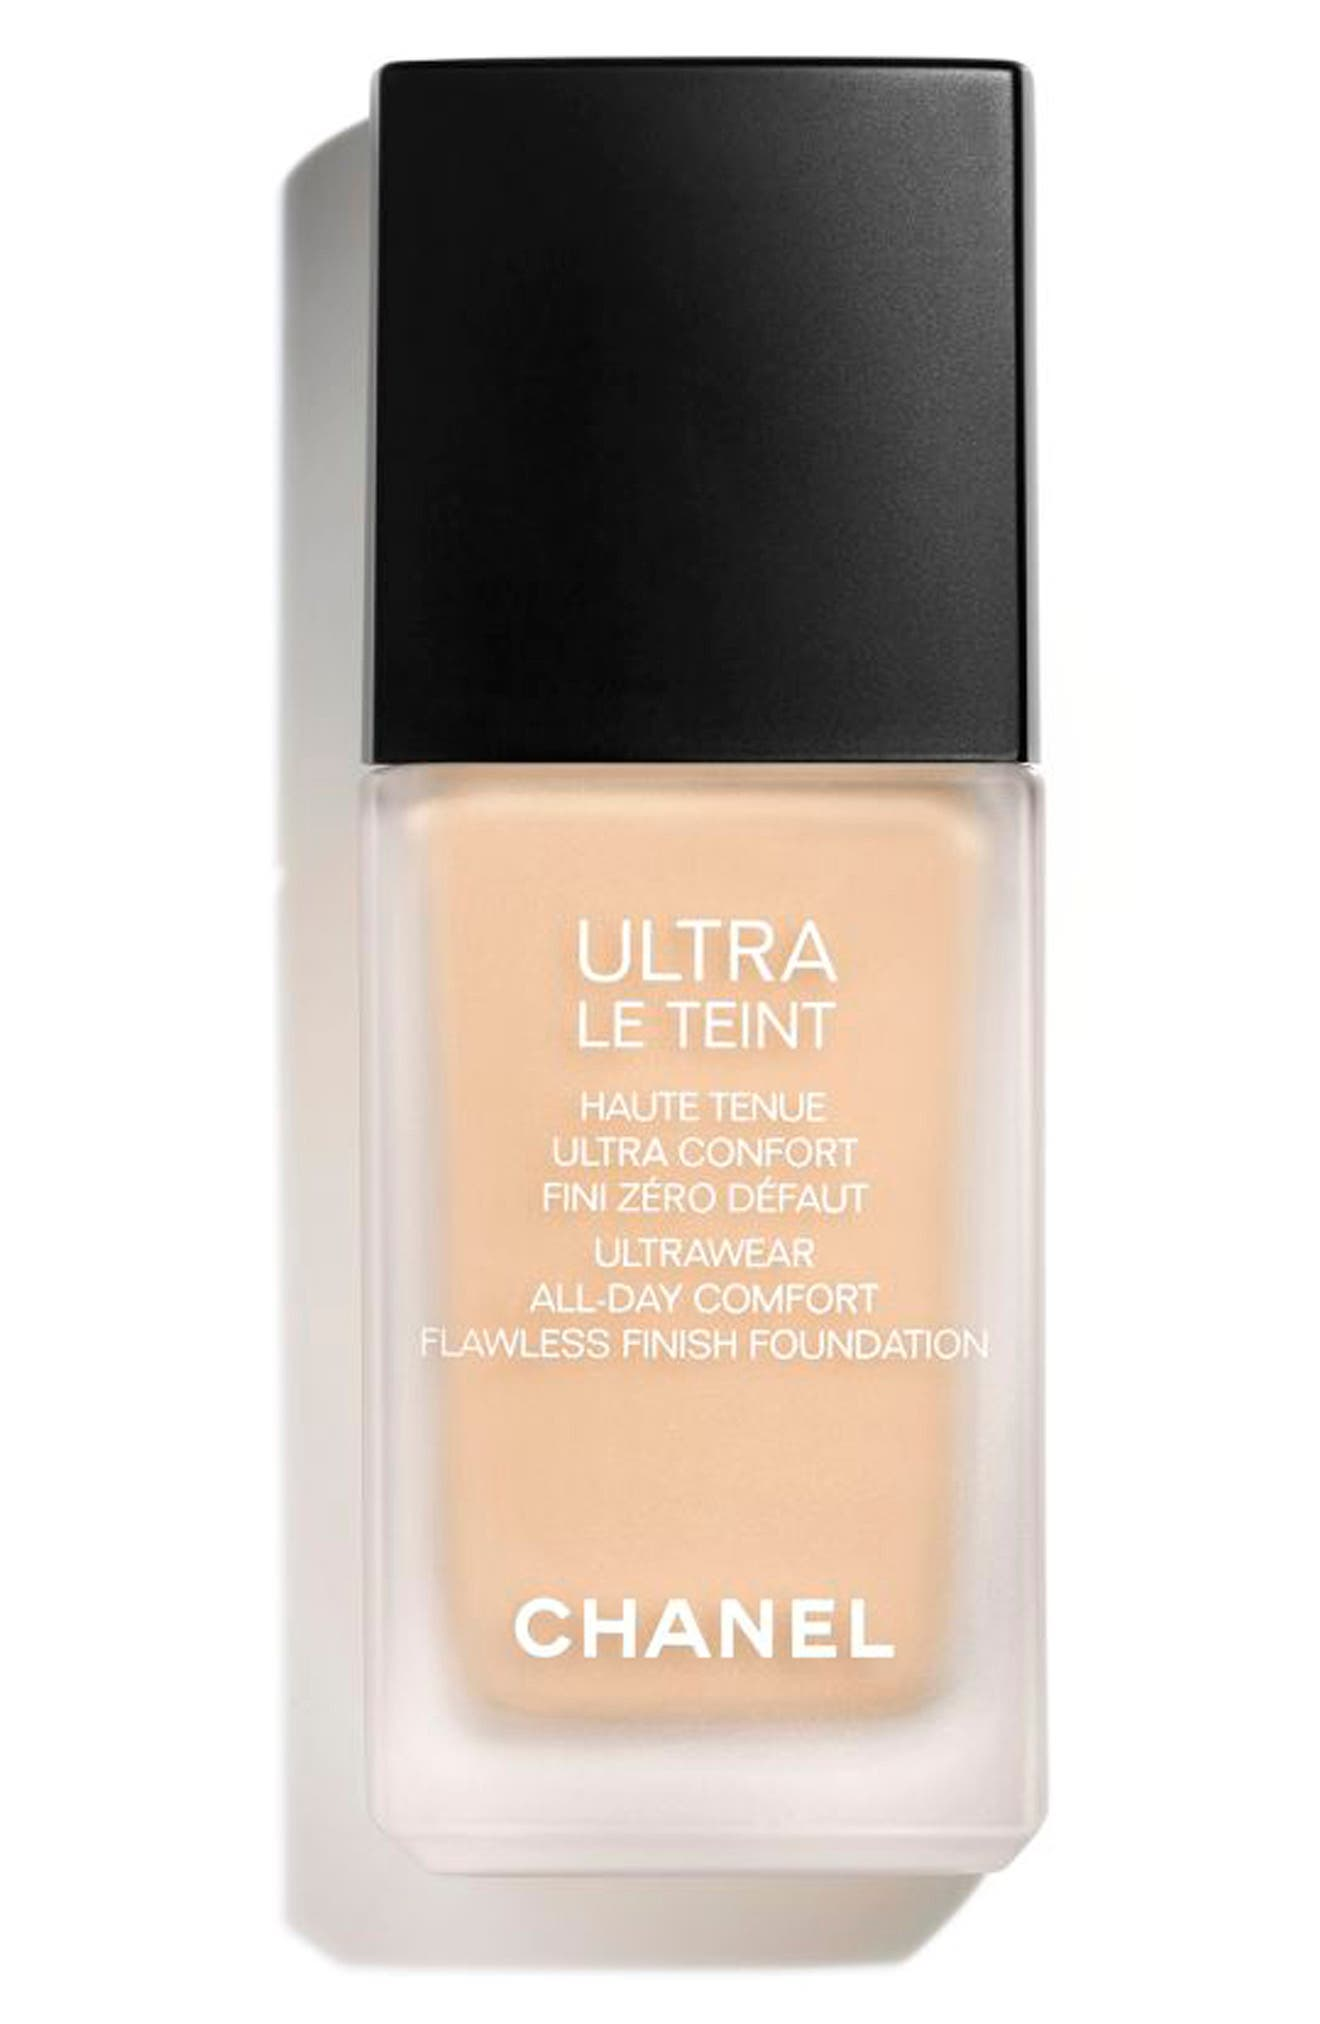 CHANEL ULTRA LE TEINT  Ultrawear All-Day Comfort Flawless Finish Foundation   Nordstrom